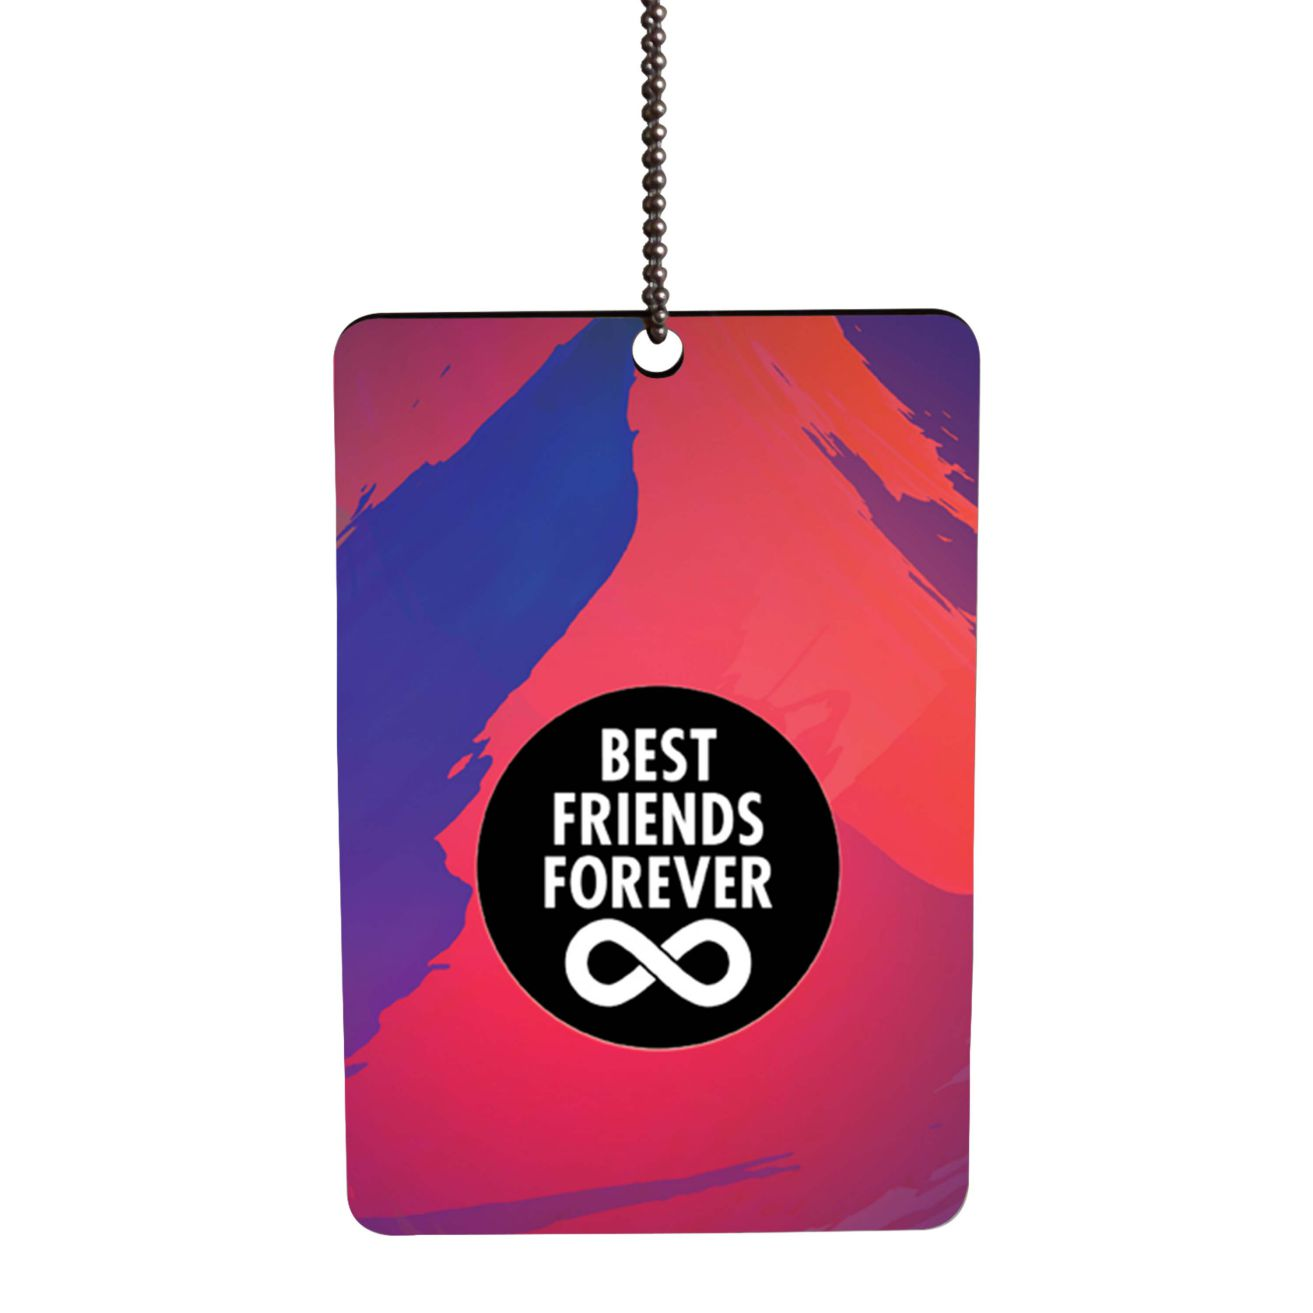 Best Friends Forever Car Hanging